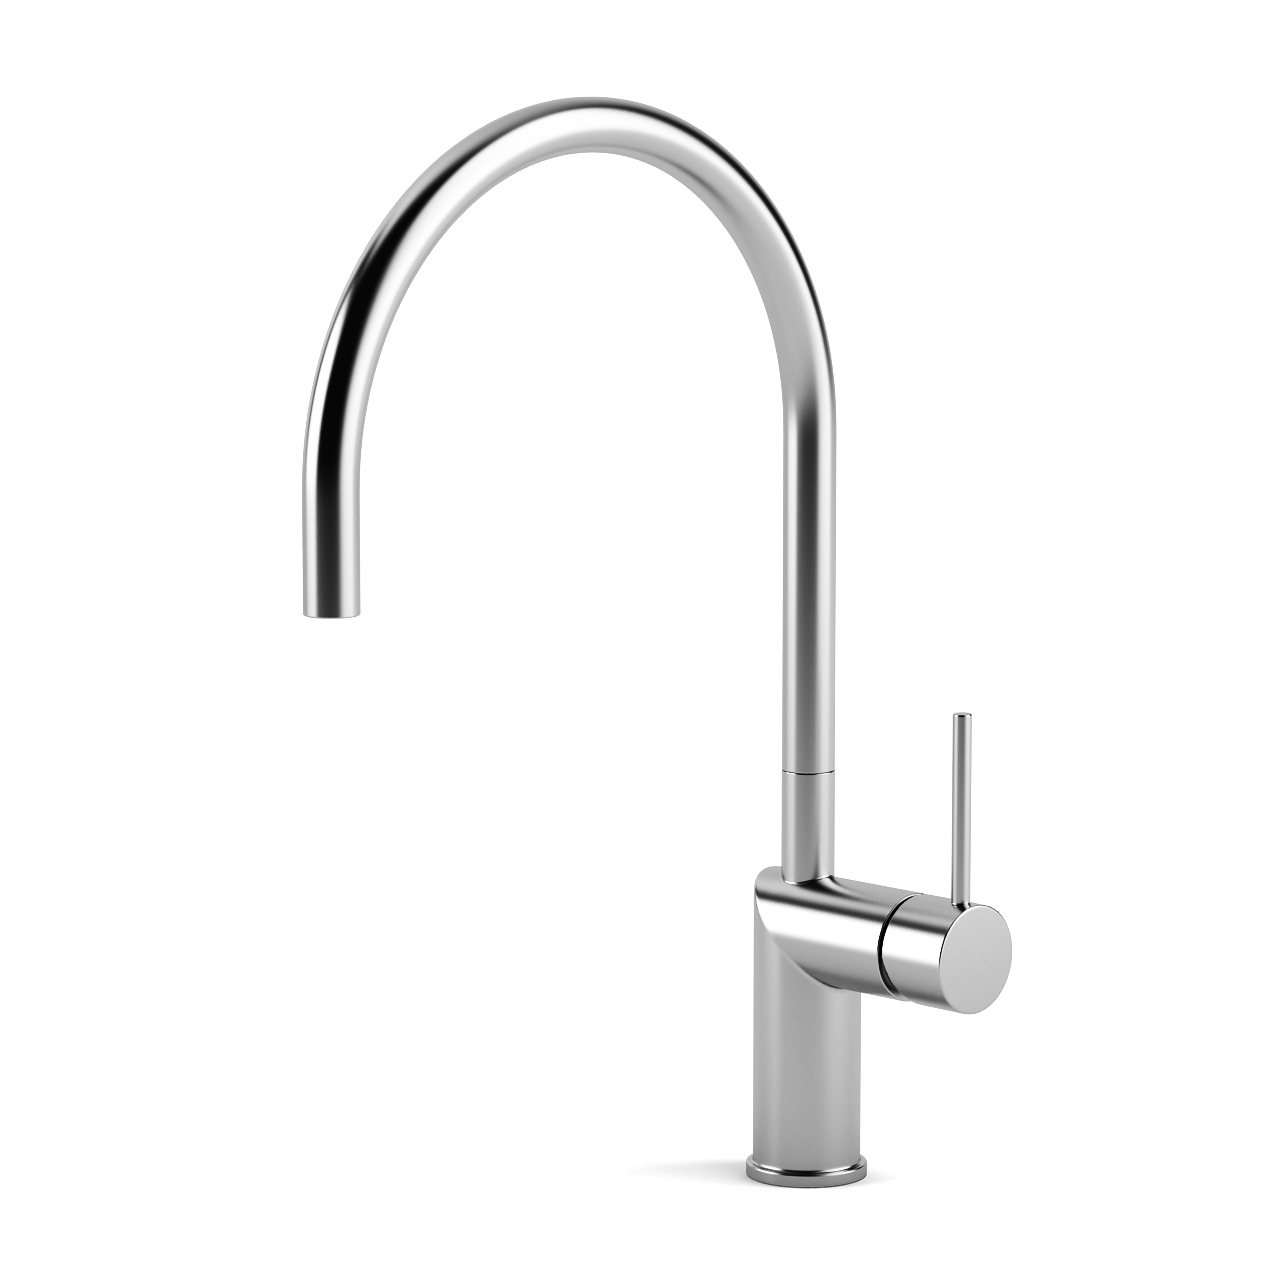 Rhythm Kitchen Faucet RH-100 by Nivito